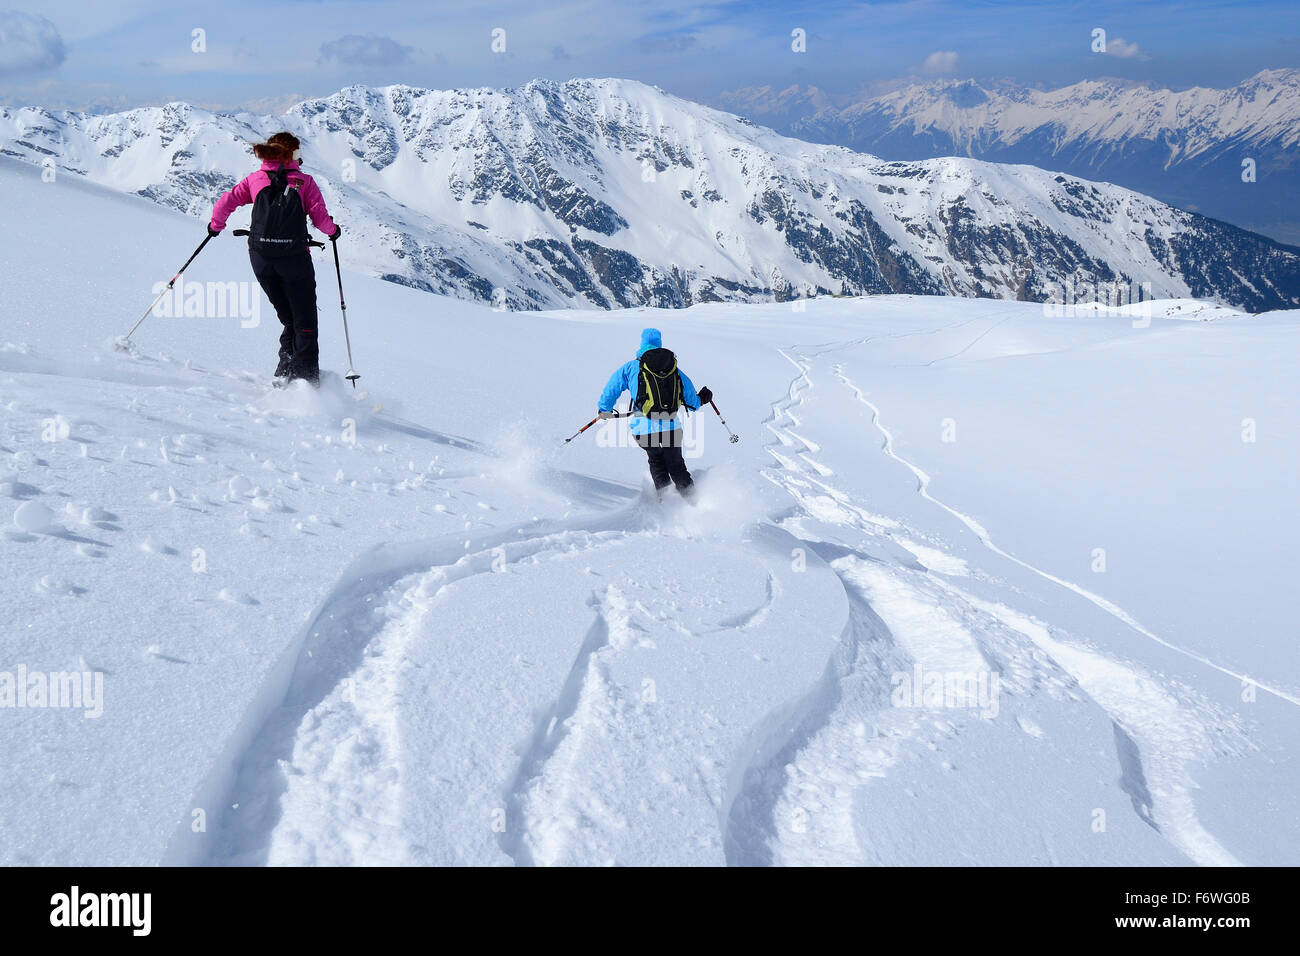 Two female backcountry skier downhill skiing, Malgrubler, Tux Alps, Tyrol, Austria - Stock Image